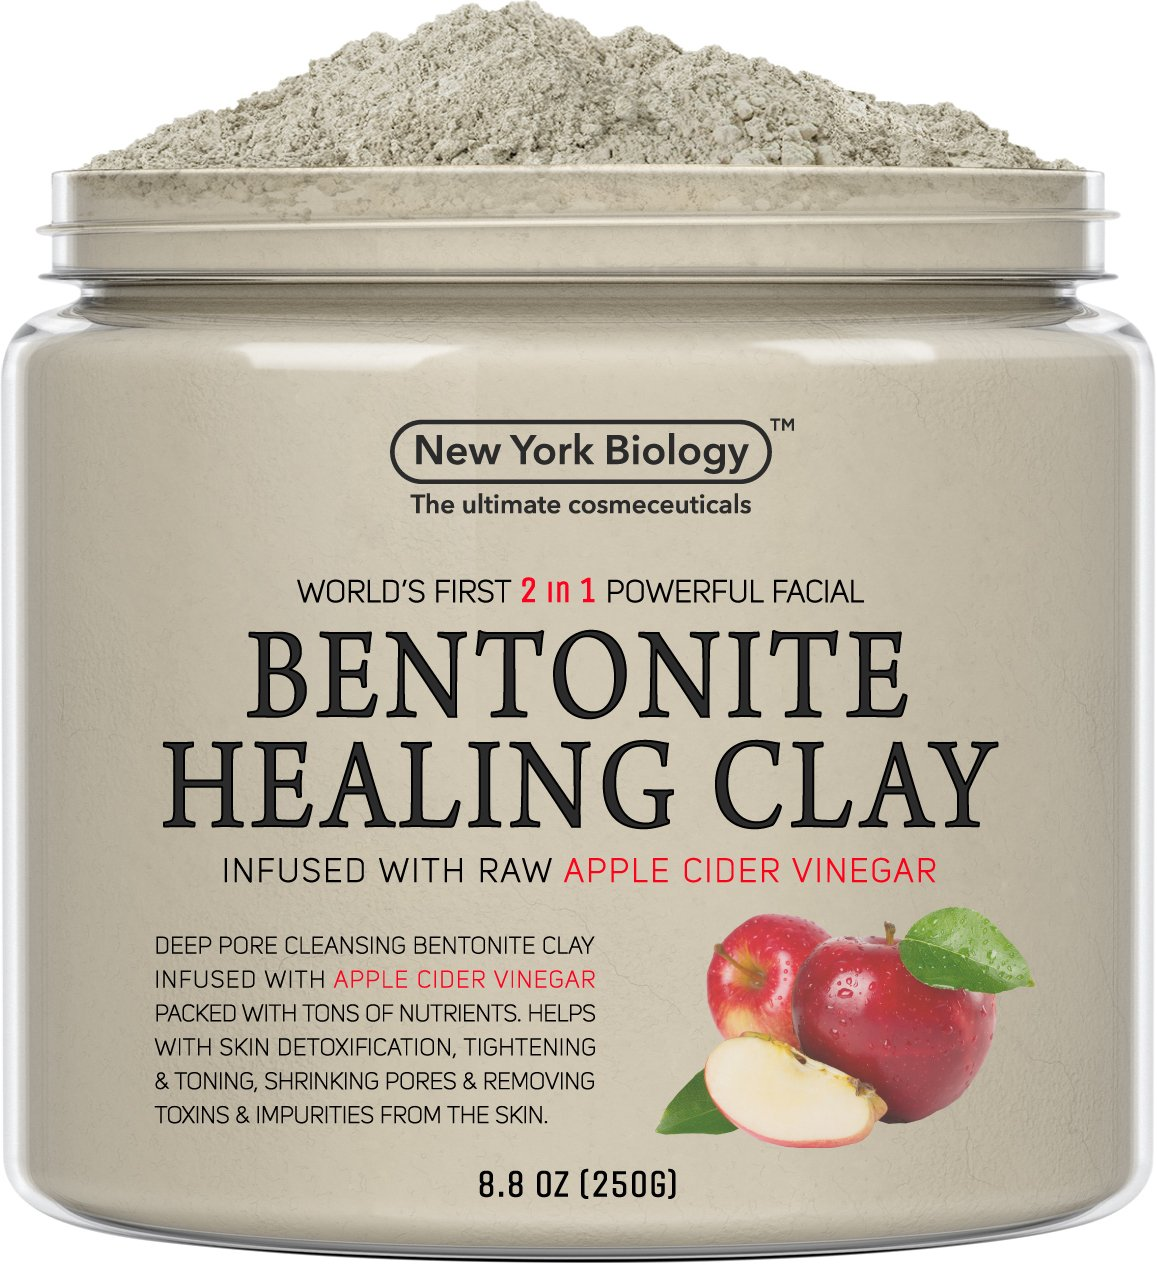 Bentonite Clay Mask Infused with Organic Apple Cider Vinegar – 100% Natural - Worlds First 2 in 1 Most Powerful Facial – All Natural Deep Pore Cleansing Helps Remove Impurities from The Skin New York Biology